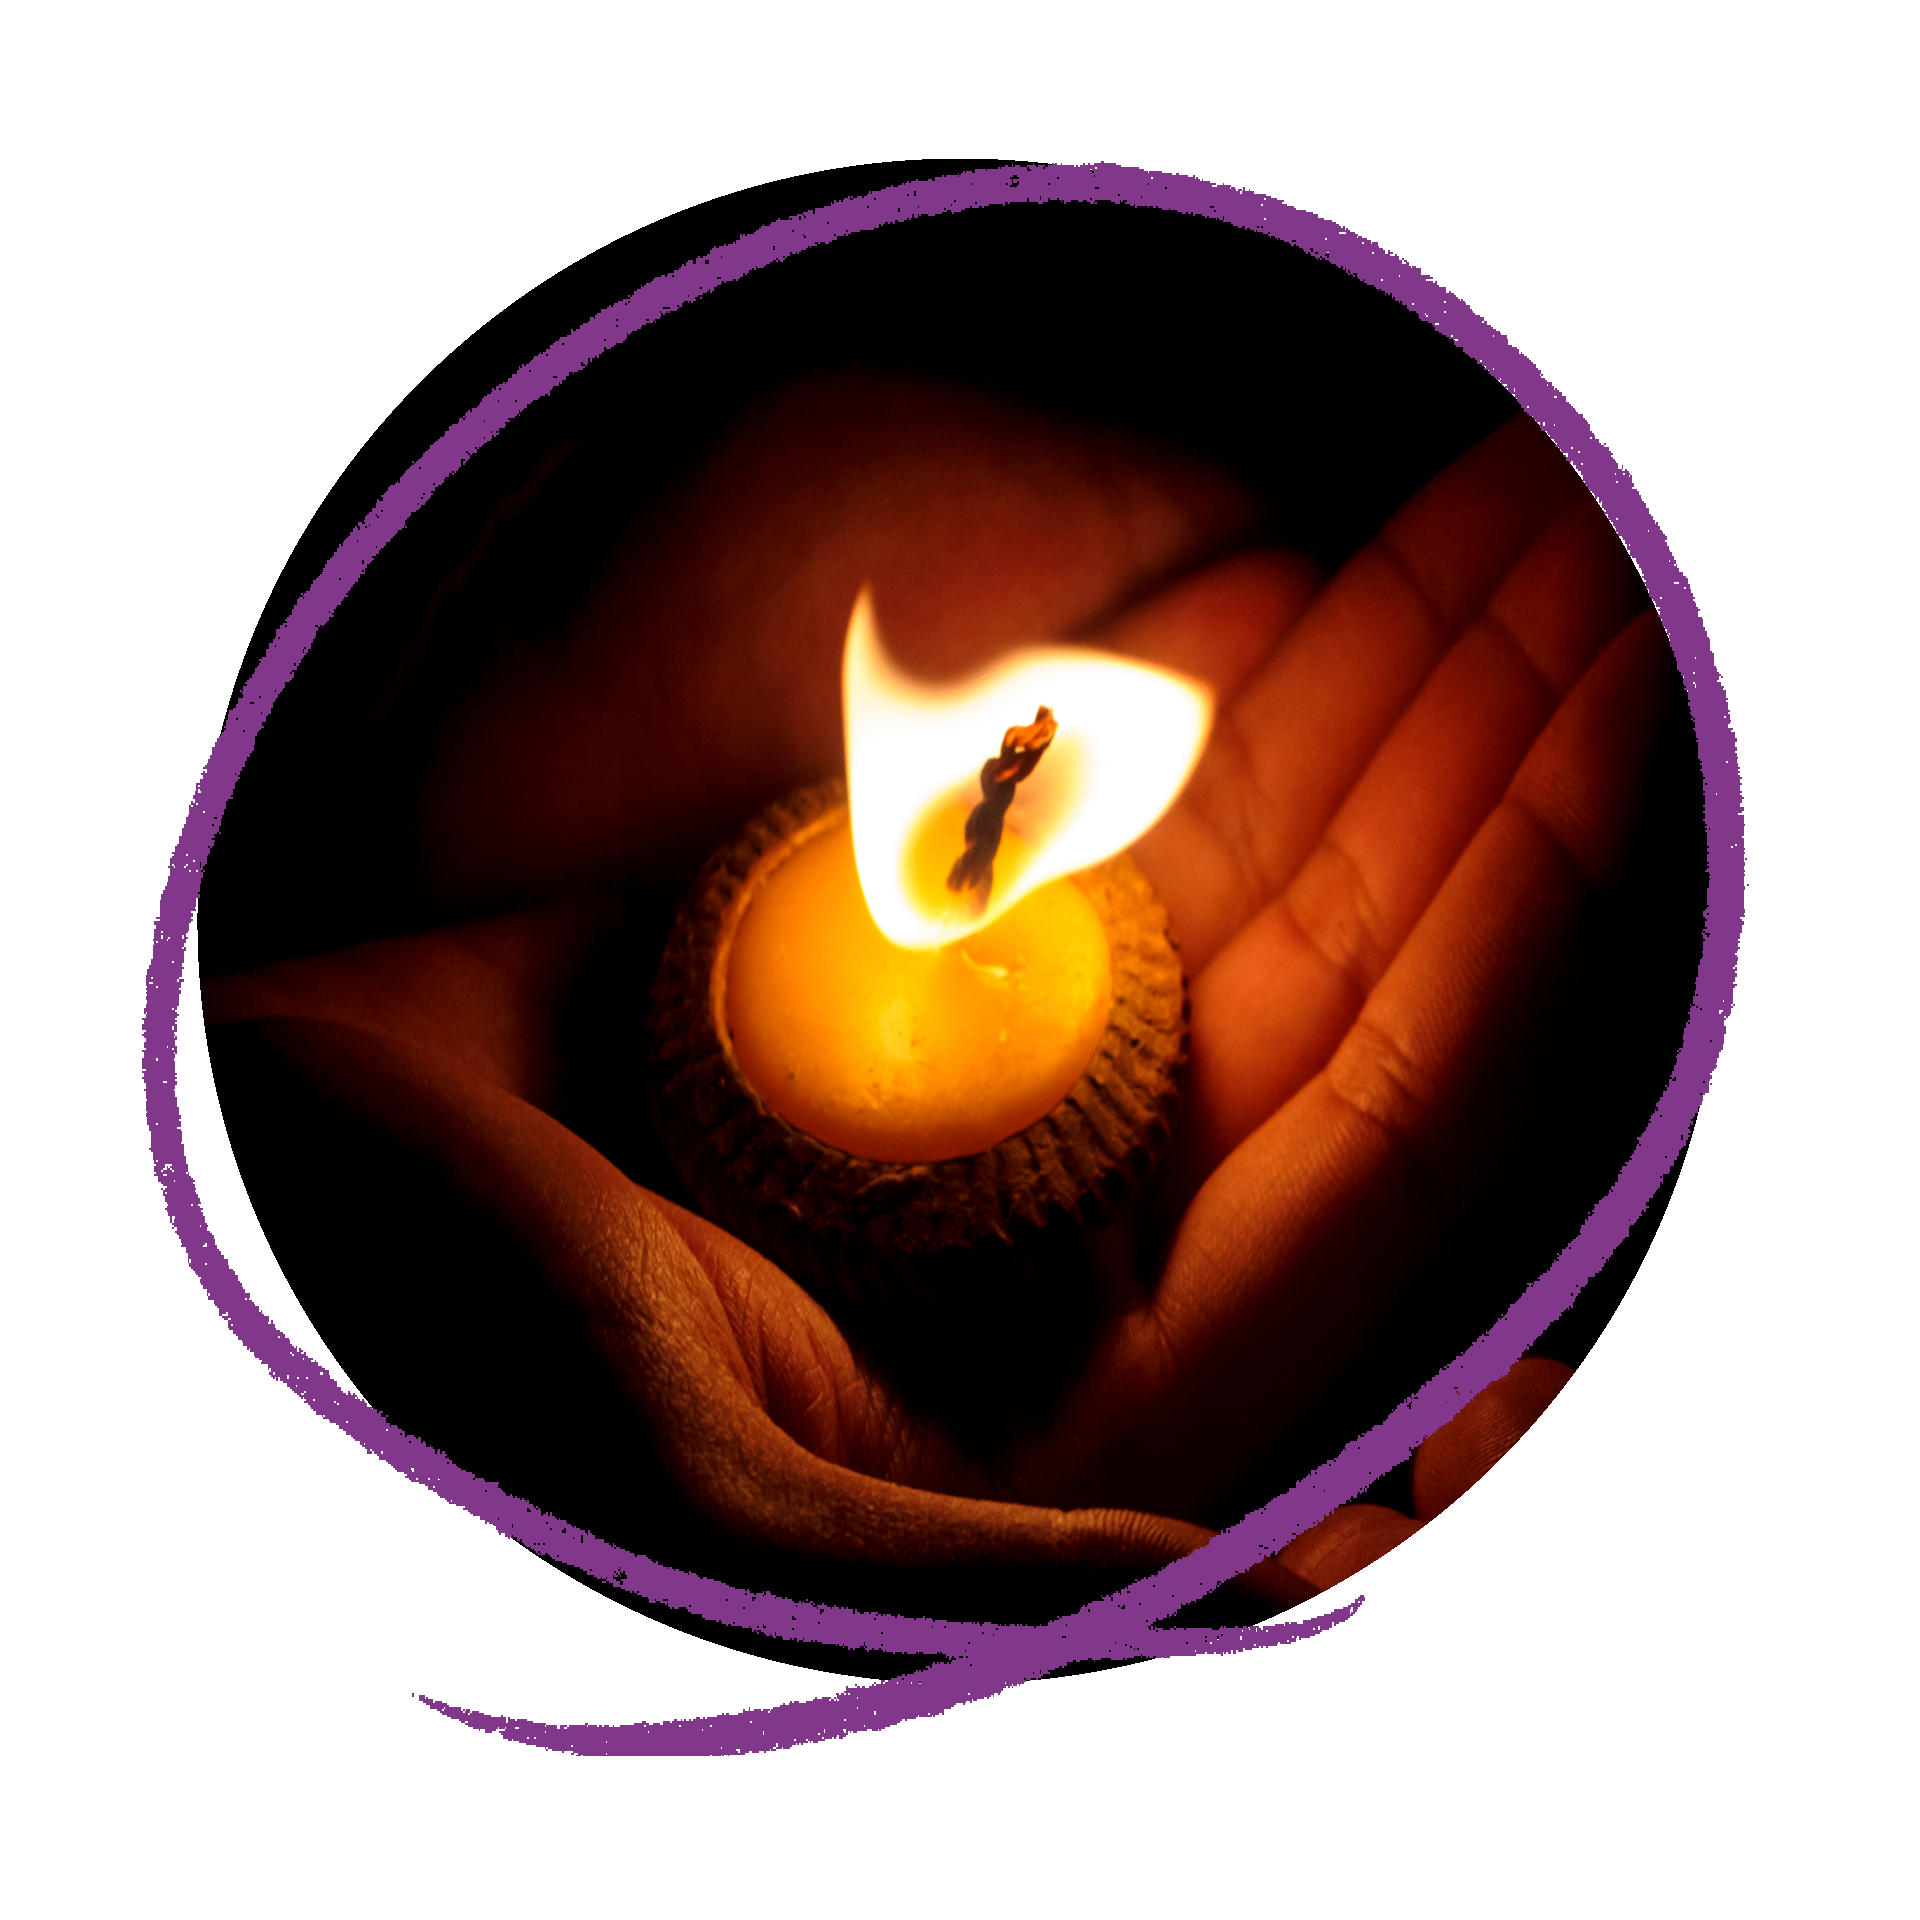 Photo of a someone holding a lit candle in the palm of their hand.